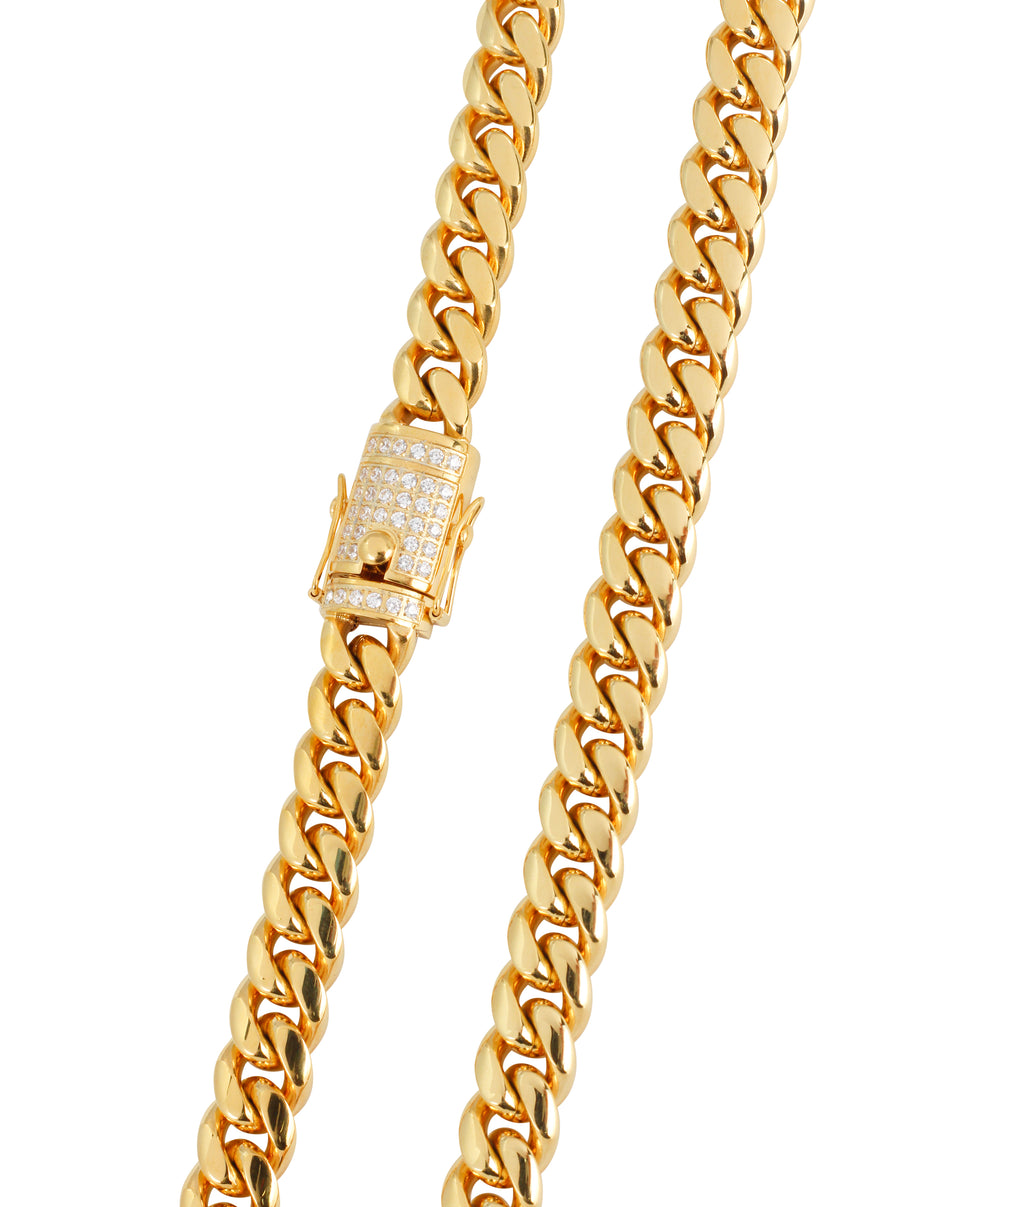 10MM GOLD MIAMI CUBAN CHAIN